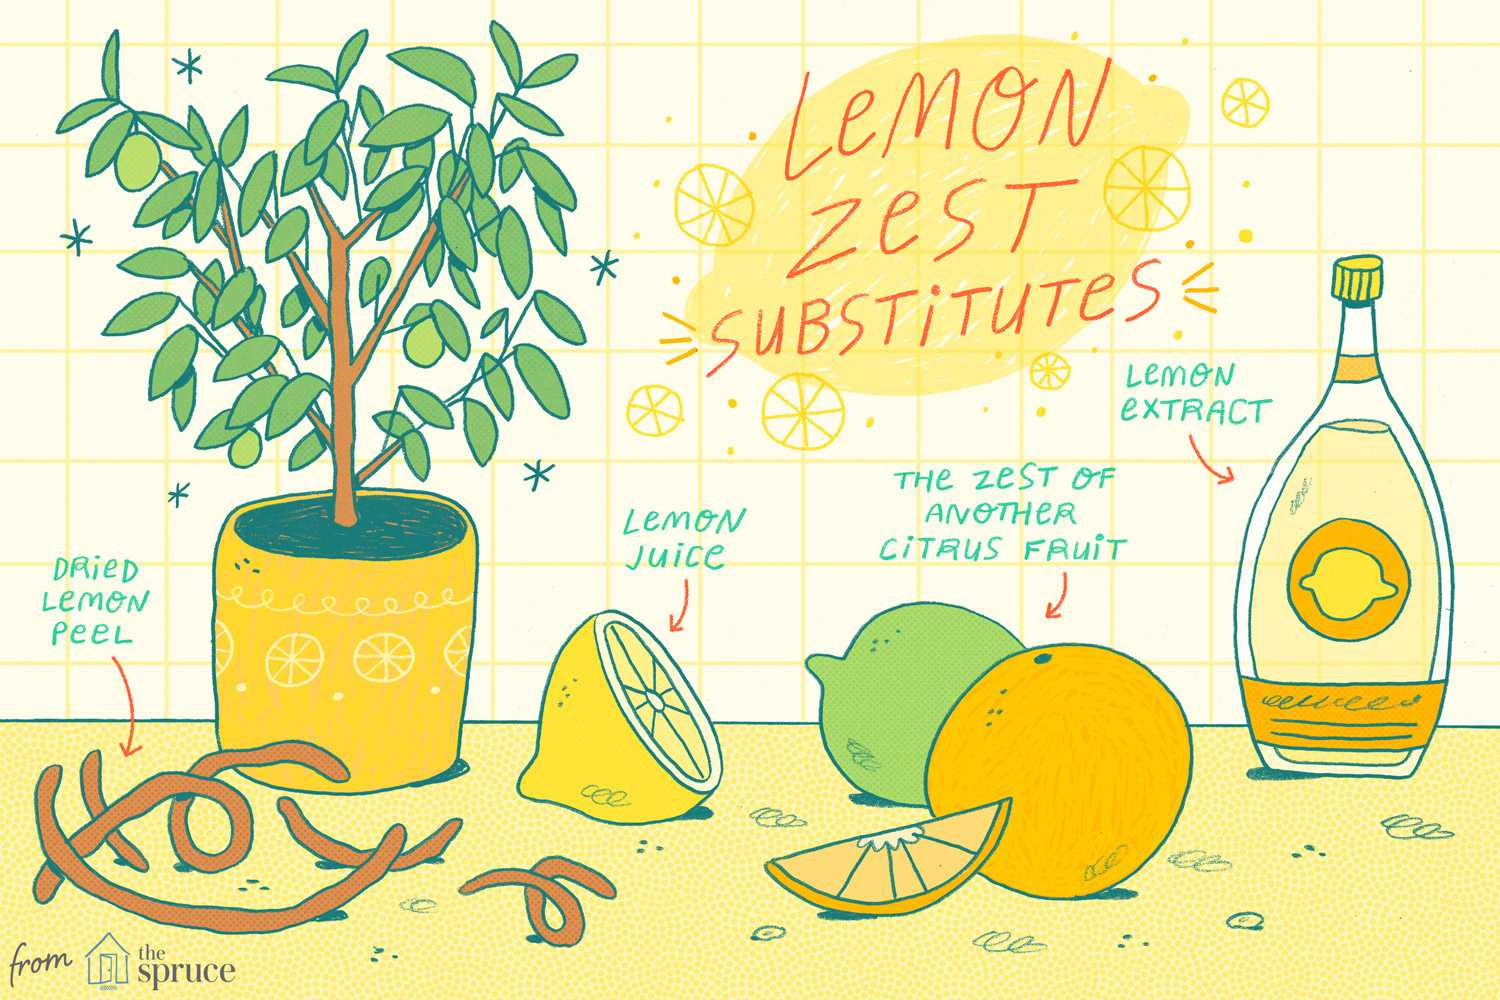 Simple Substitutes for Lemon Zest